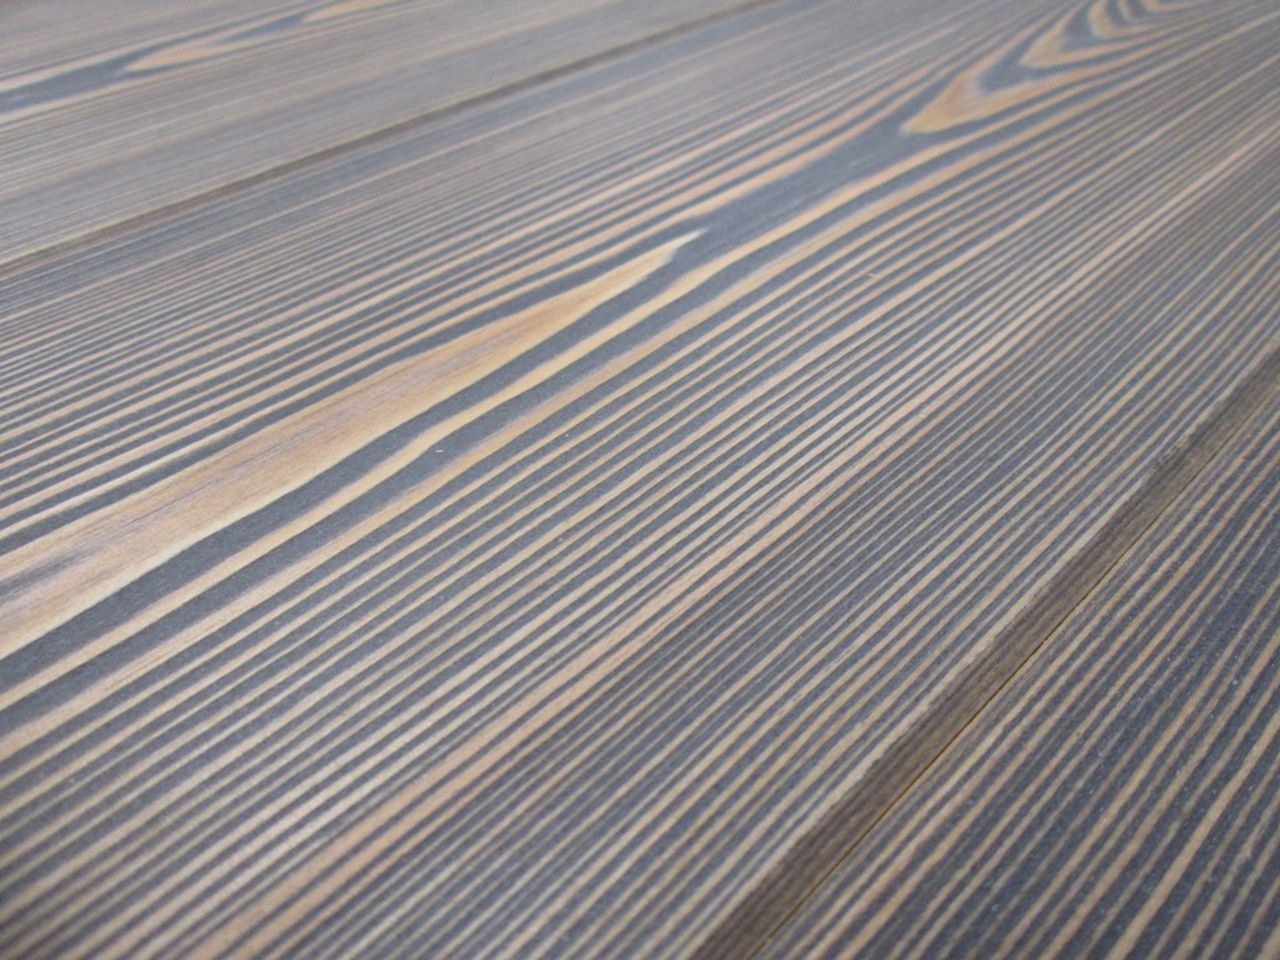 backgrounds, pattern, full frame, textured, striped, no people, nature, abstract, outdoors, day, corrugated iron, close-up